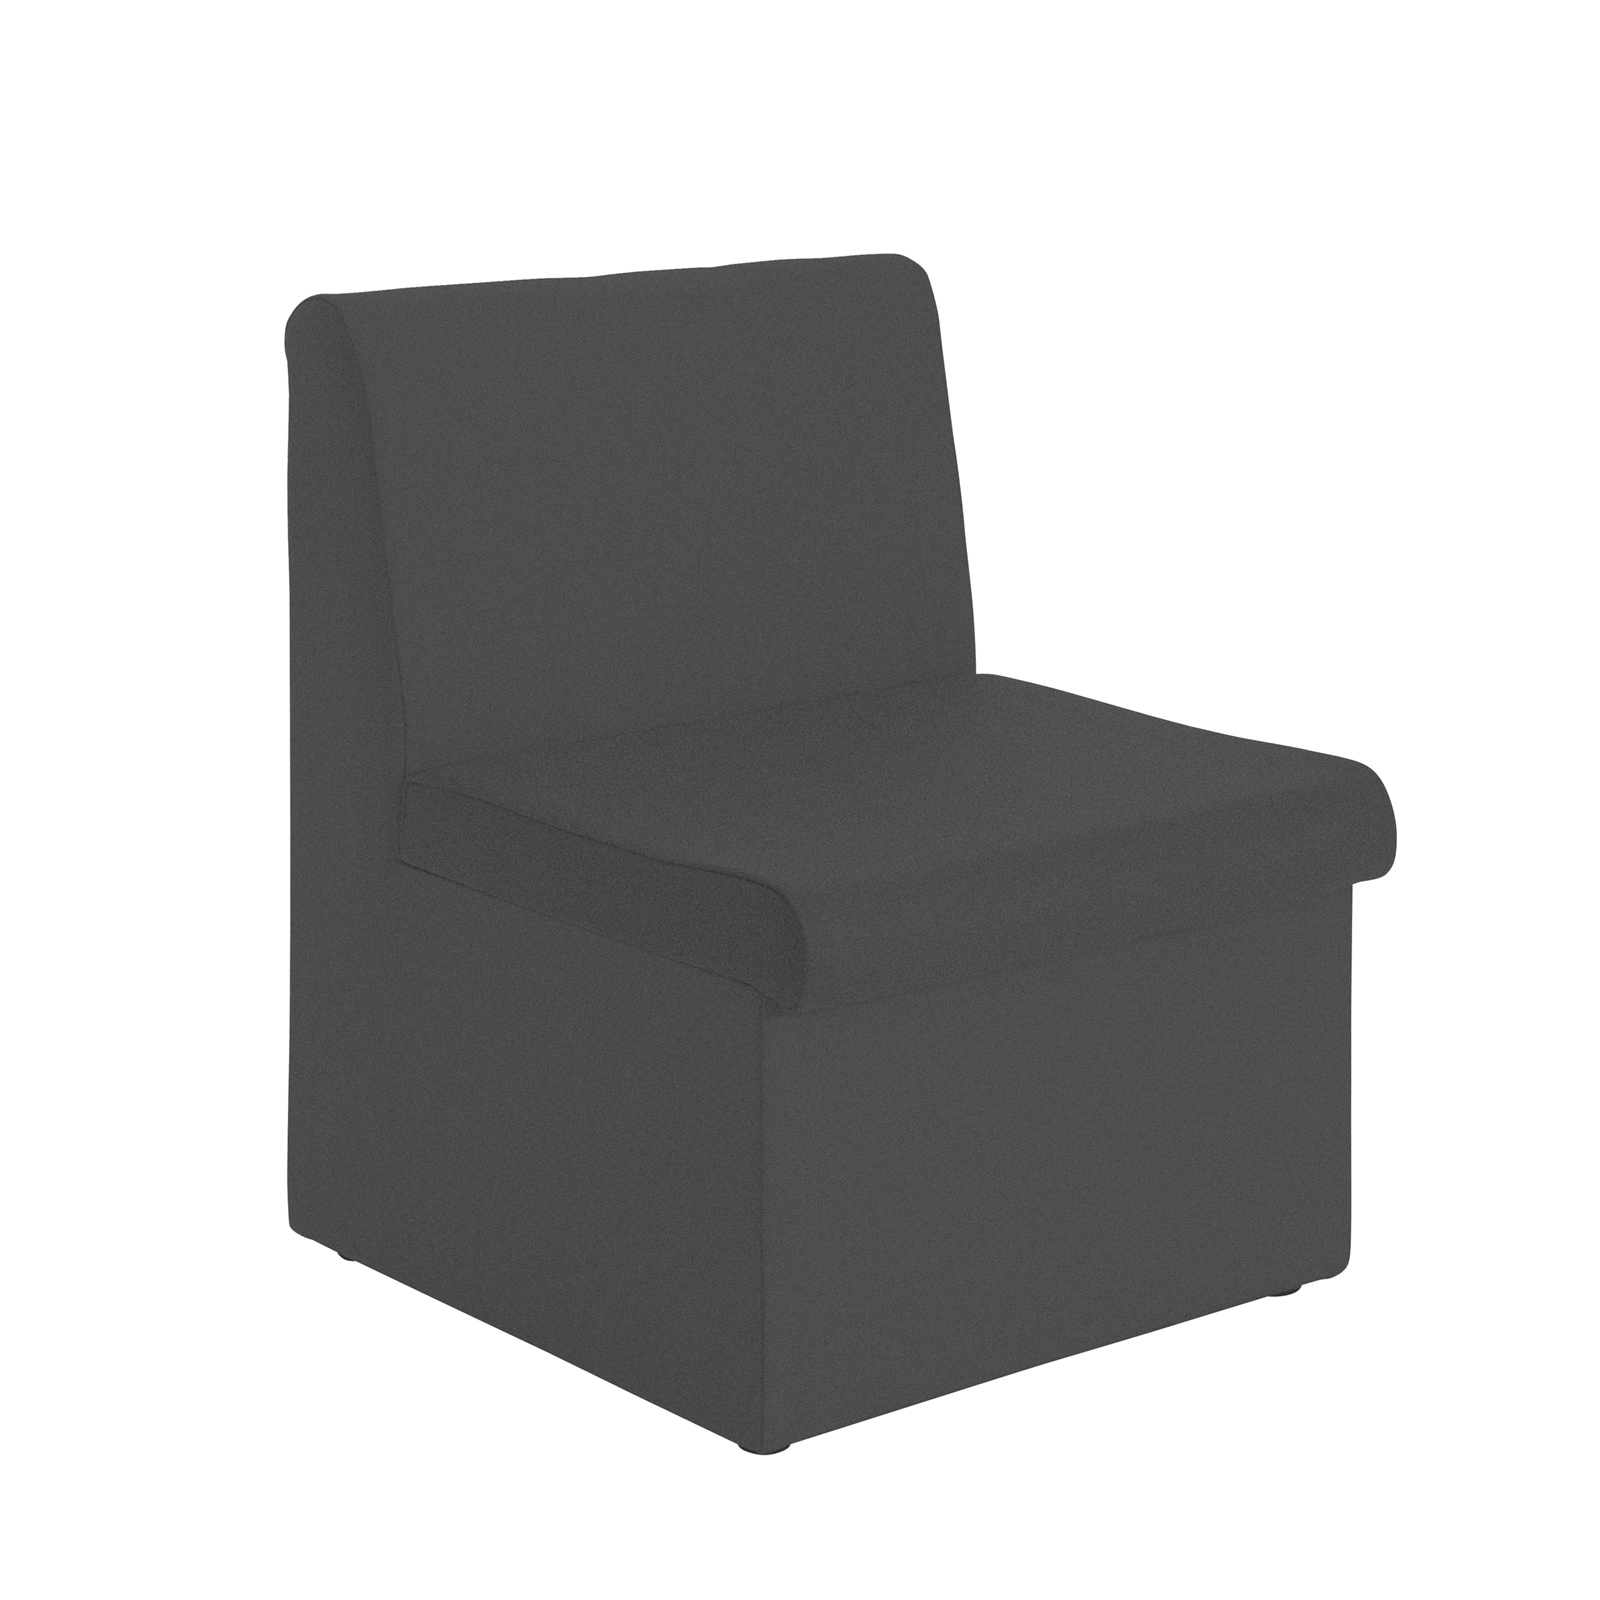 Reception Chairs Alto modular reception seating with no arms - charcoal